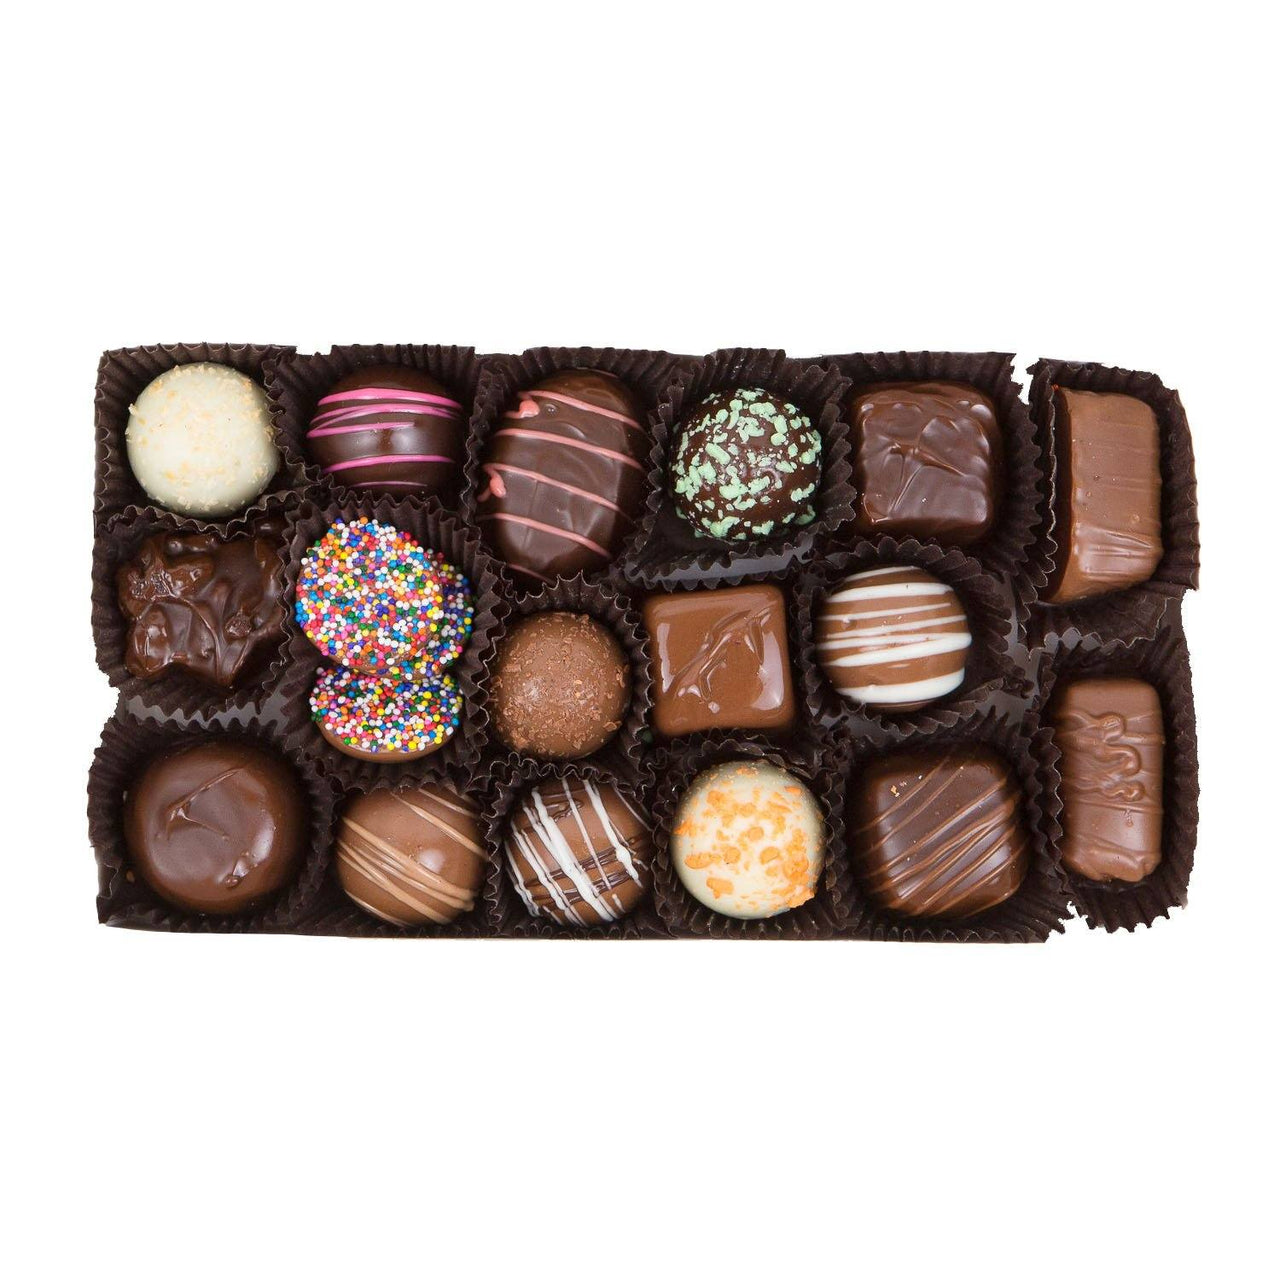 Gifts for Aunt - Assorted Chocolate Gift Box - Jackie's Chocolate (1487142780963)